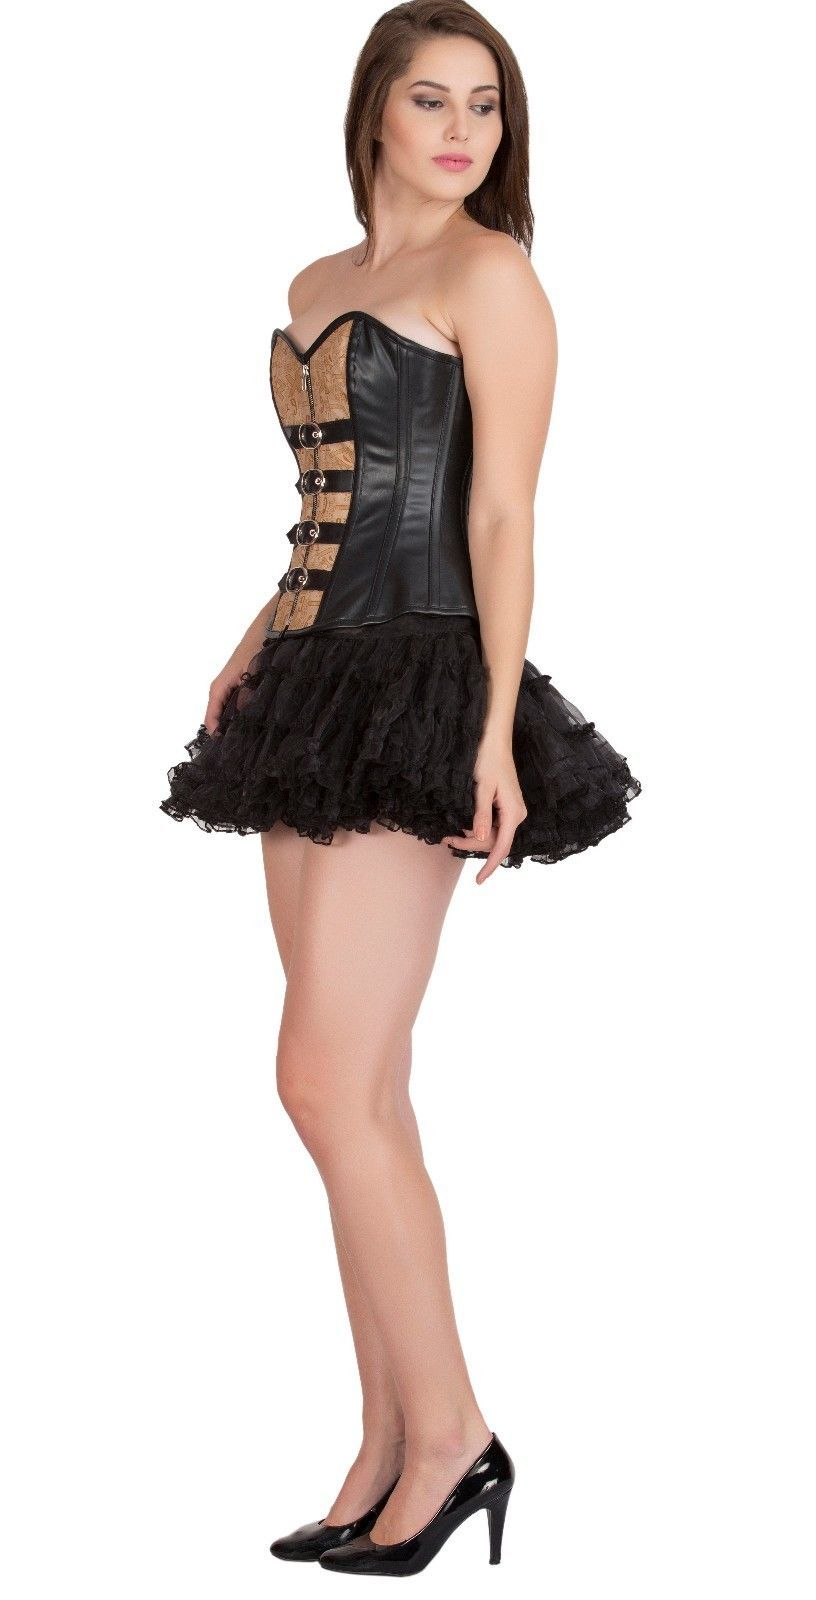 Black Printed Brown Faux Leather Halloween Costume Bustier Overbust Corset Top